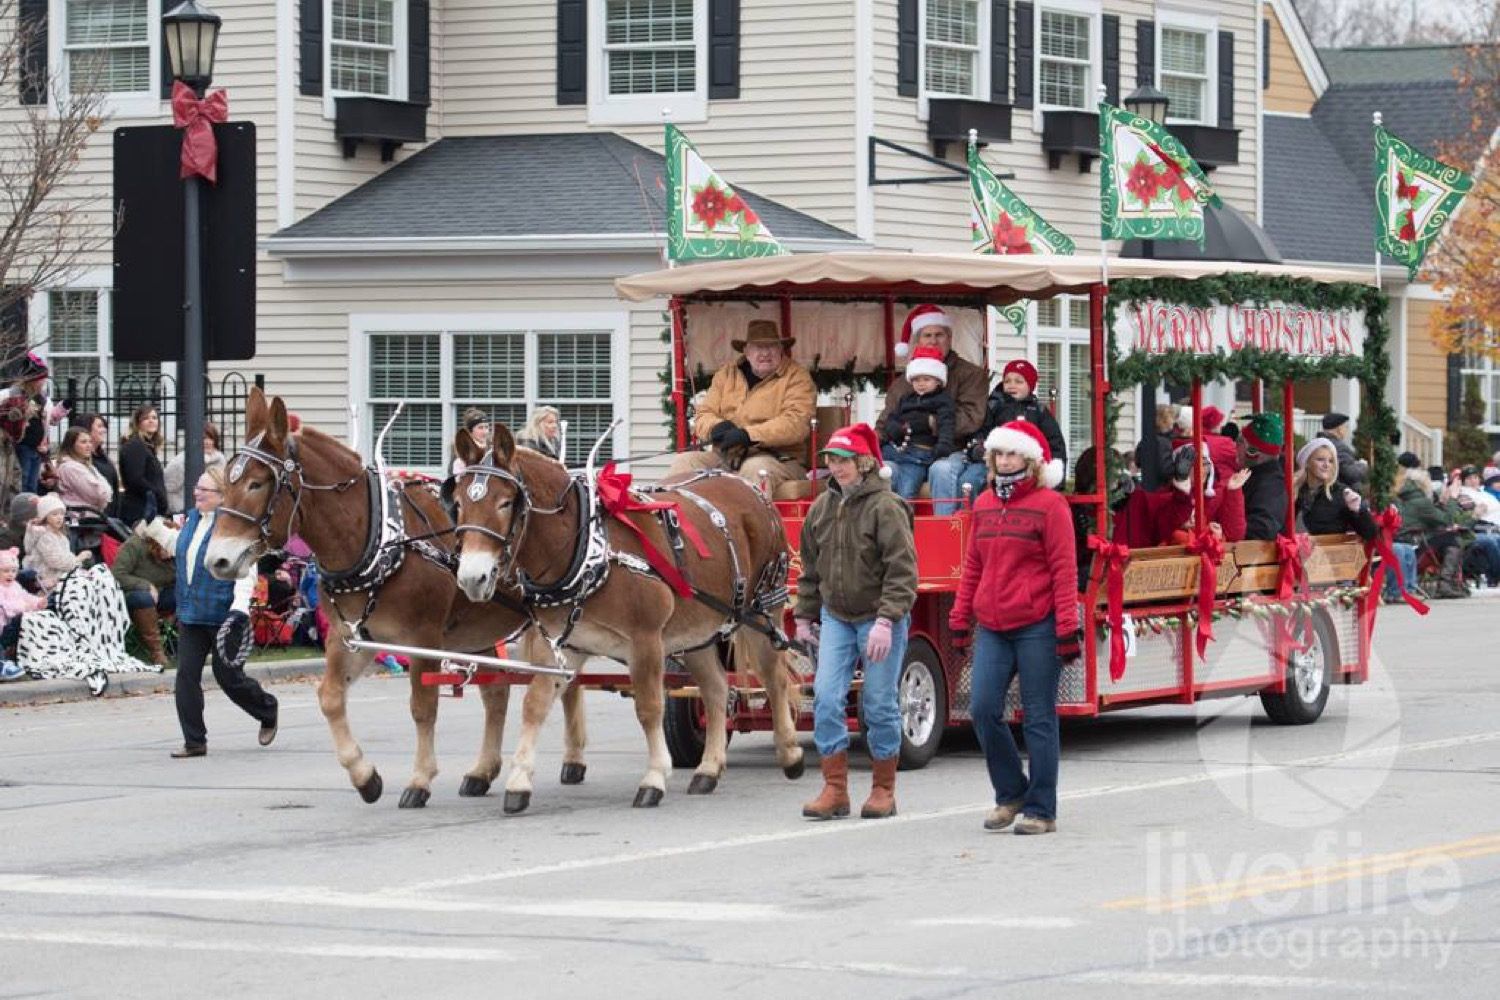 Highlights of Lebanon's holiday event calendar include a ride on the North Pole Express with Santa, a live nativity, dinner at the Golden Lamb, and a rendition of Charlie Brown Christmas. / Image: Curt McAdams{ }